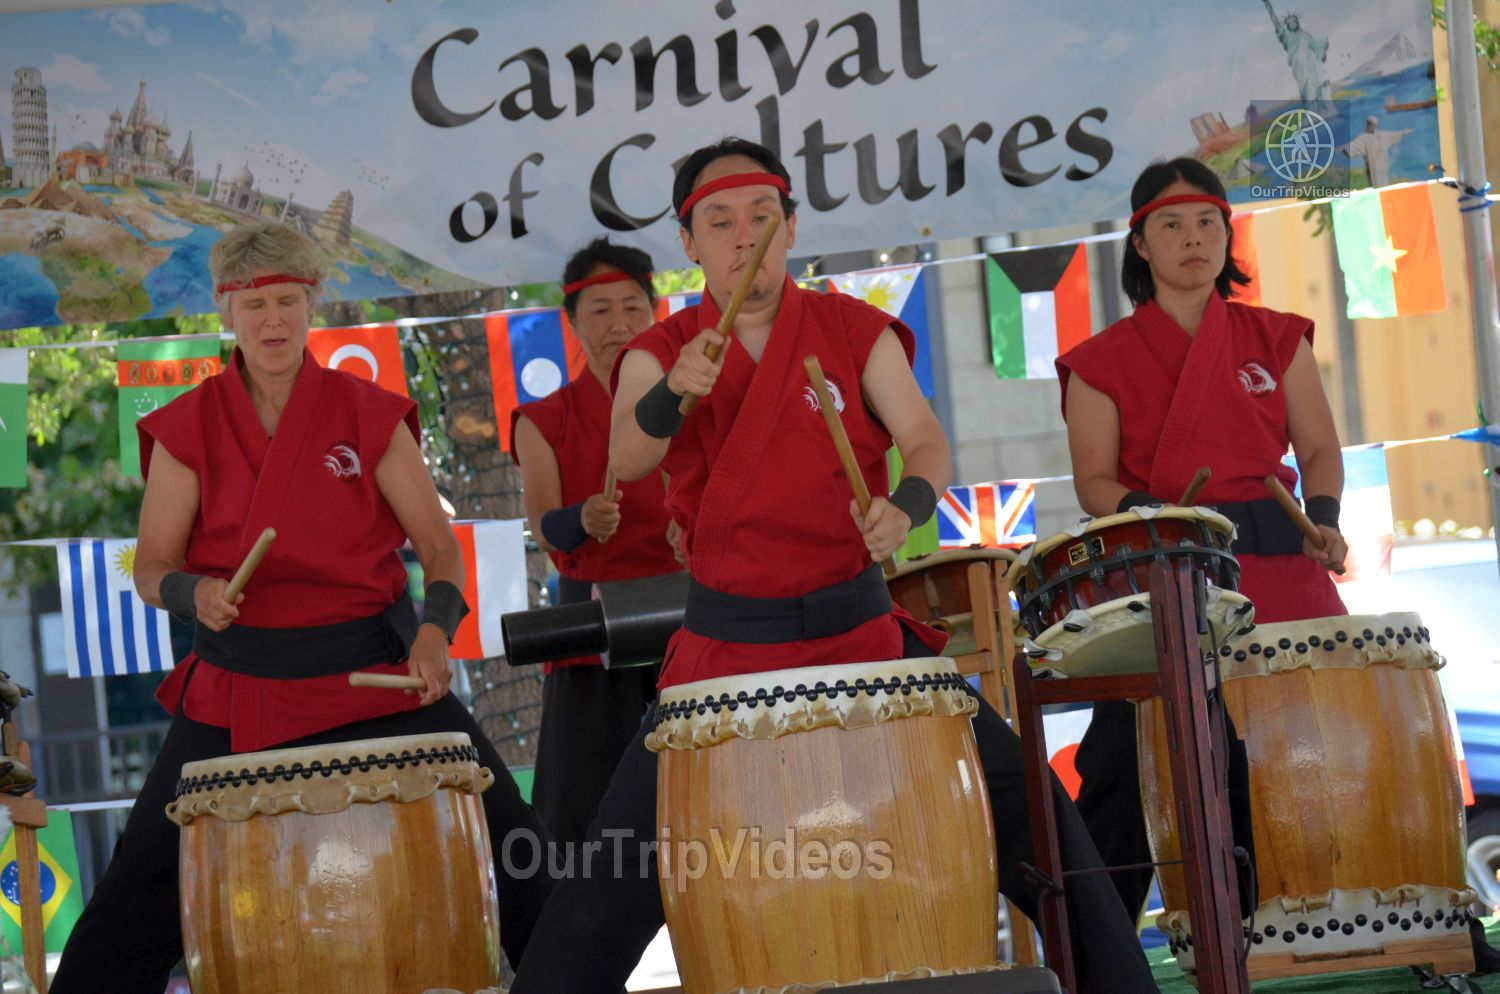 Carnival of Cultures, Cupertino, CA, USA - Picture 2 of 25